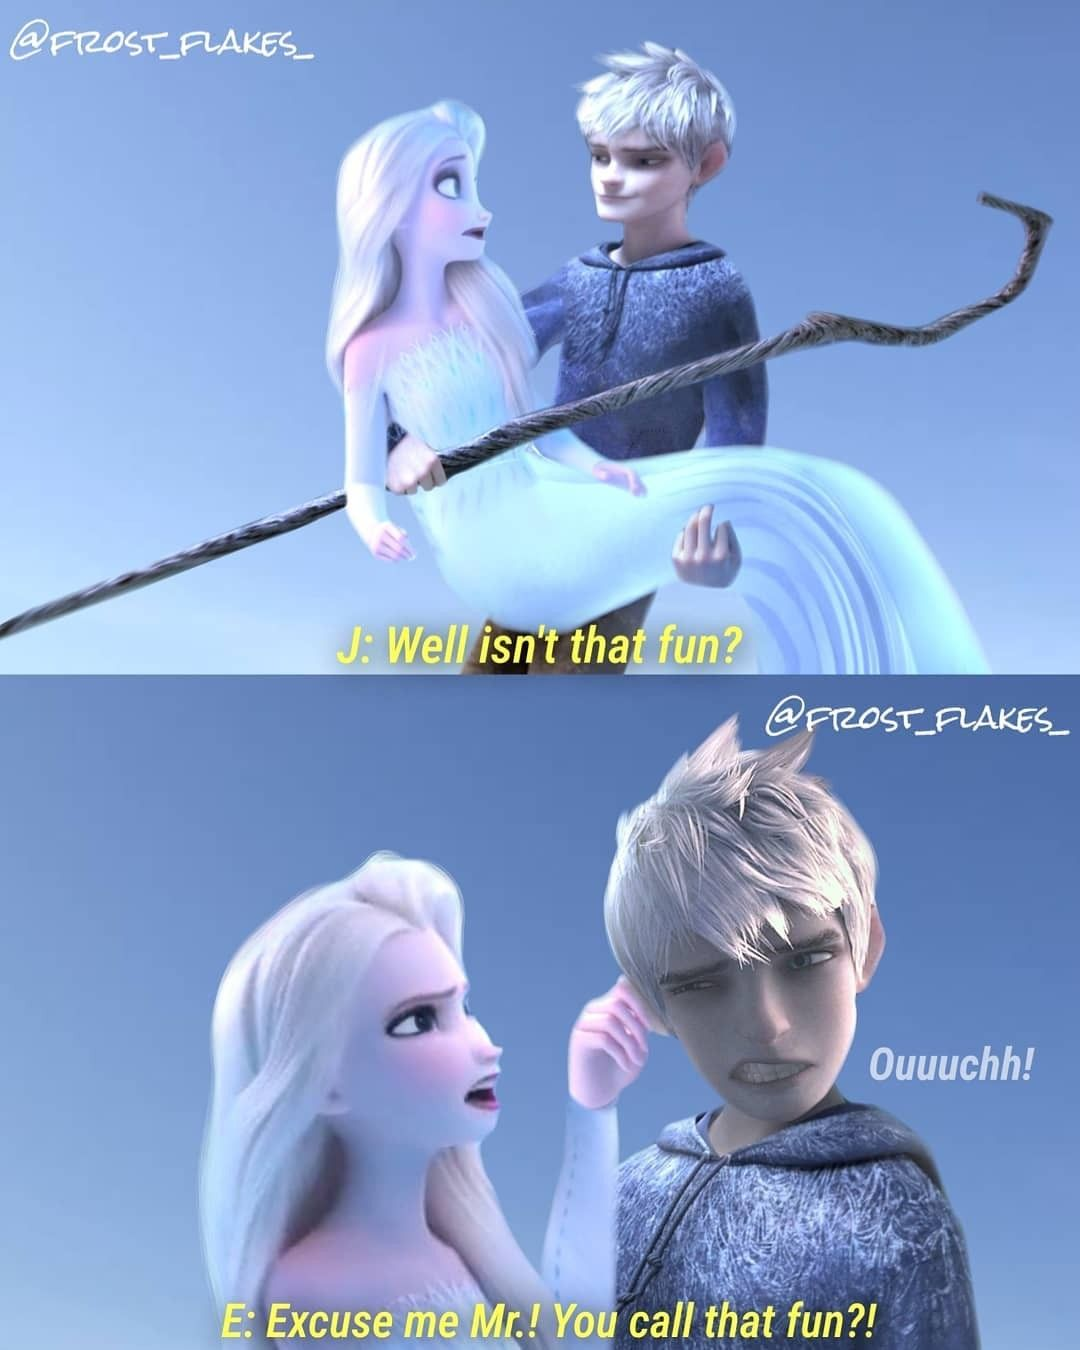 Pin By I Love My Myth On King Frost And Qureen Elsa Jelsa Jack And Elsa Disney Princess Frozen